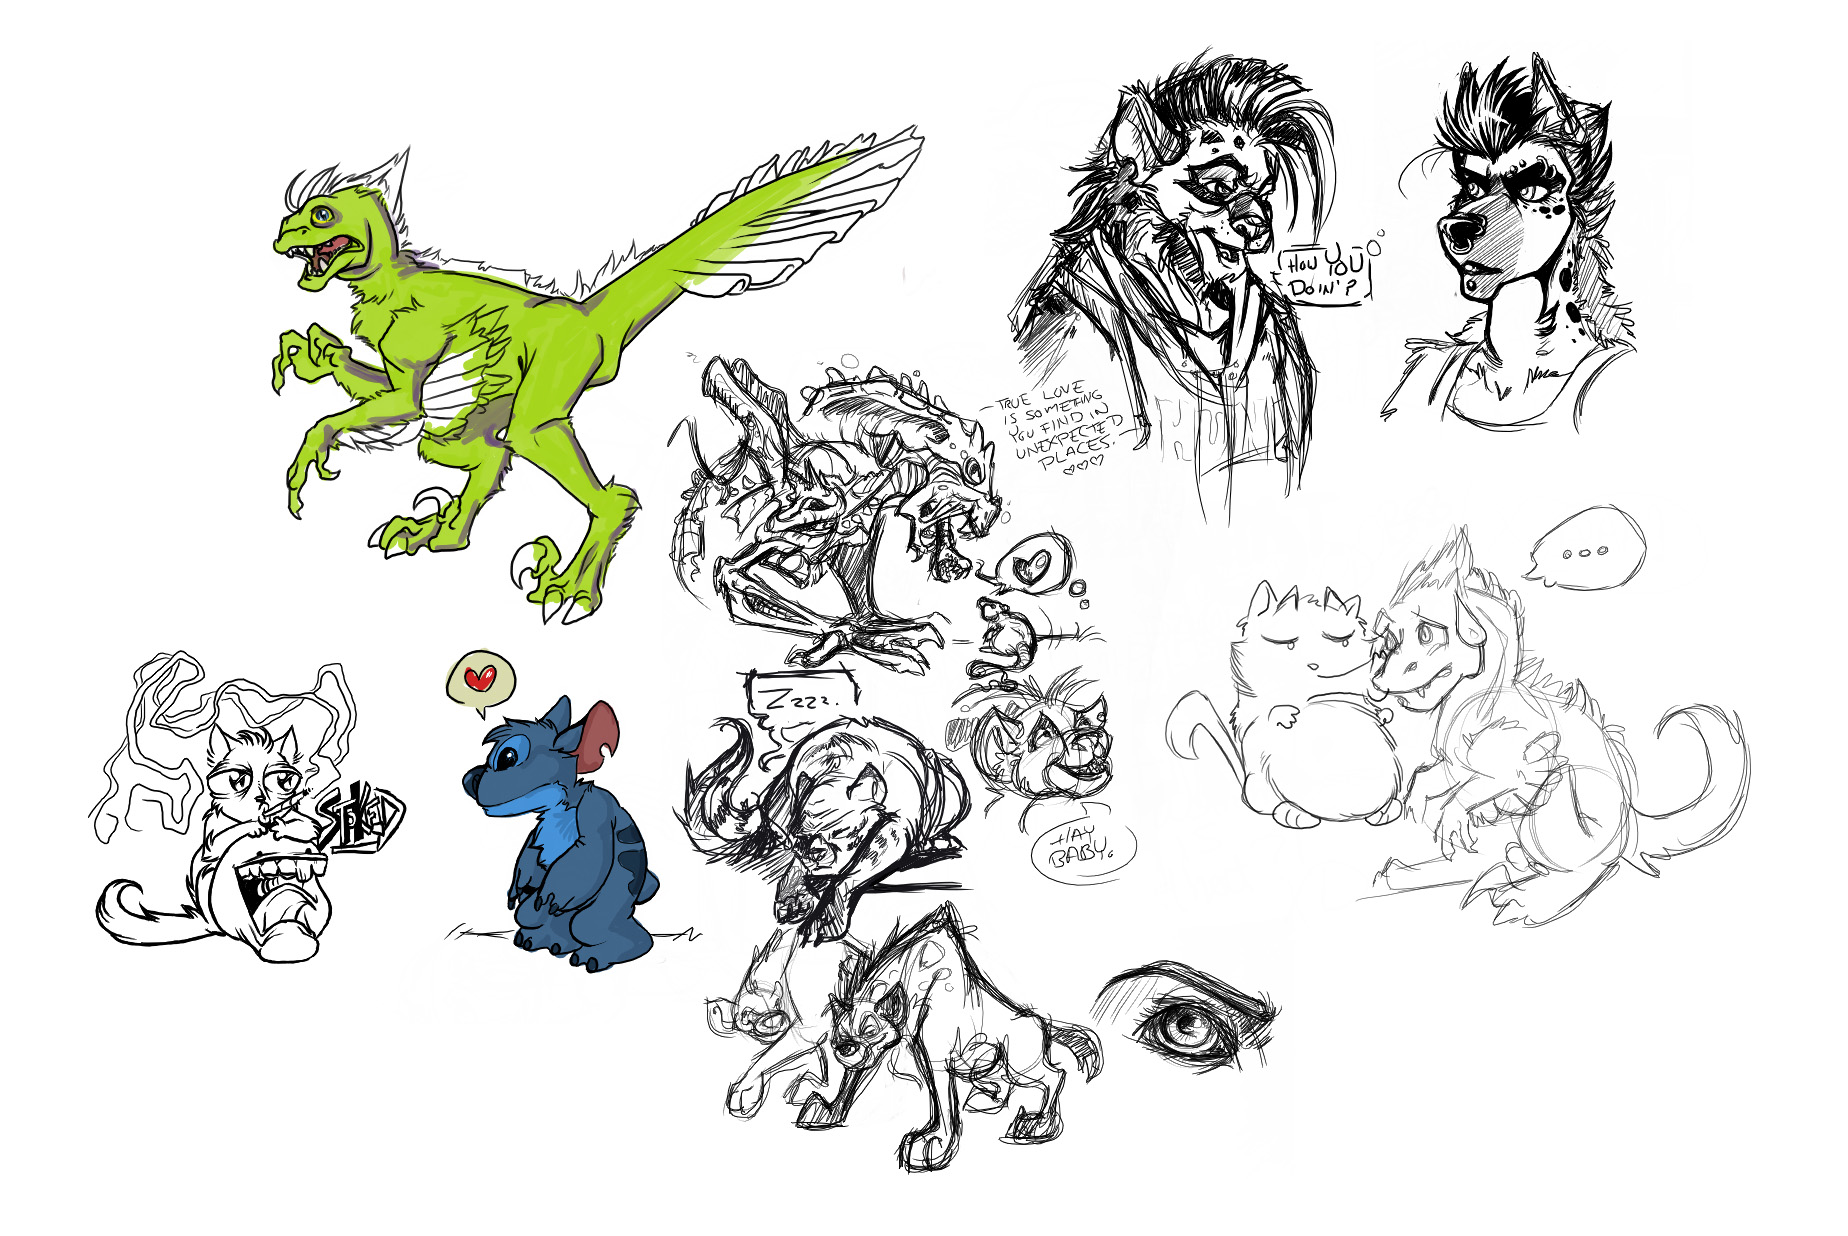 OC doodles by myself and Kara@TIG. I don't have much from her 'cuz she deletes as she draws. XD